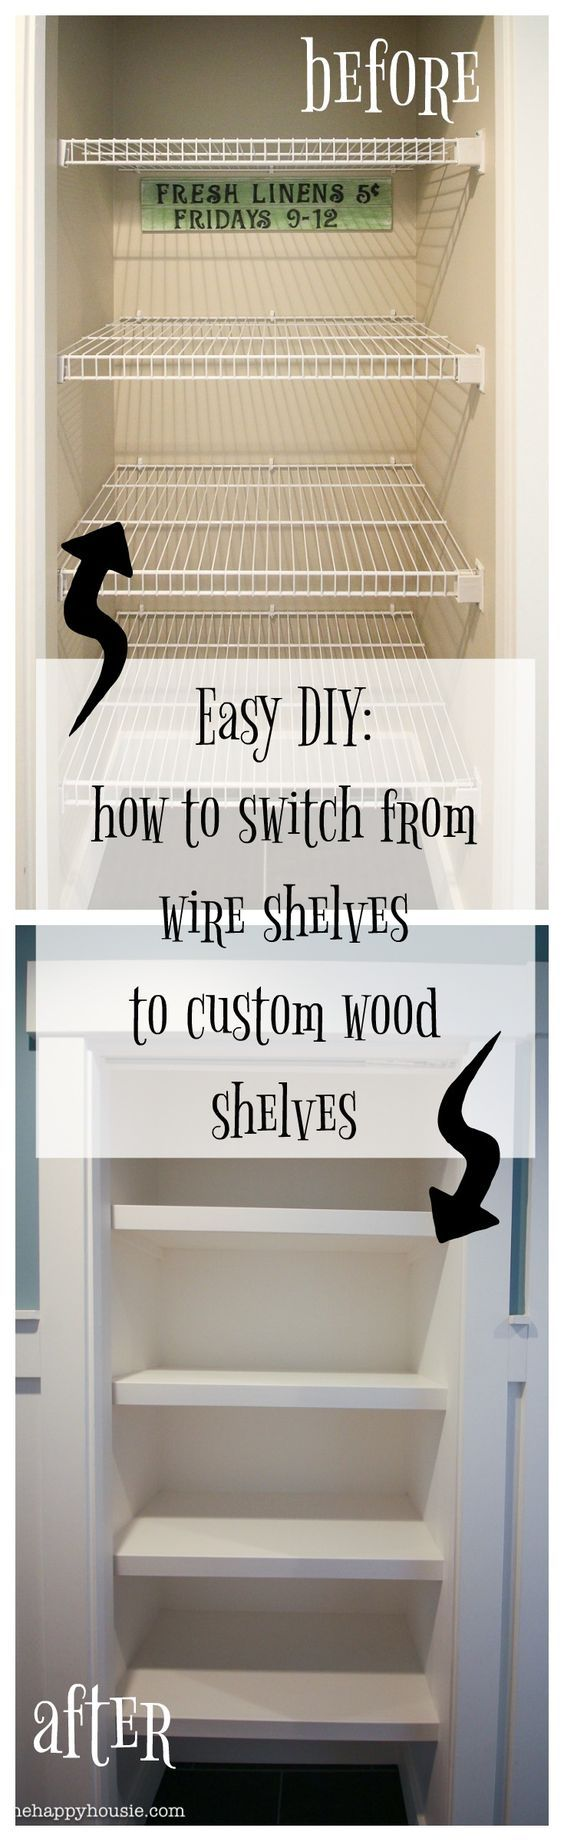 How to Replace Wire Shelves with DIY Custom Wood Shelves - The Happy Housie